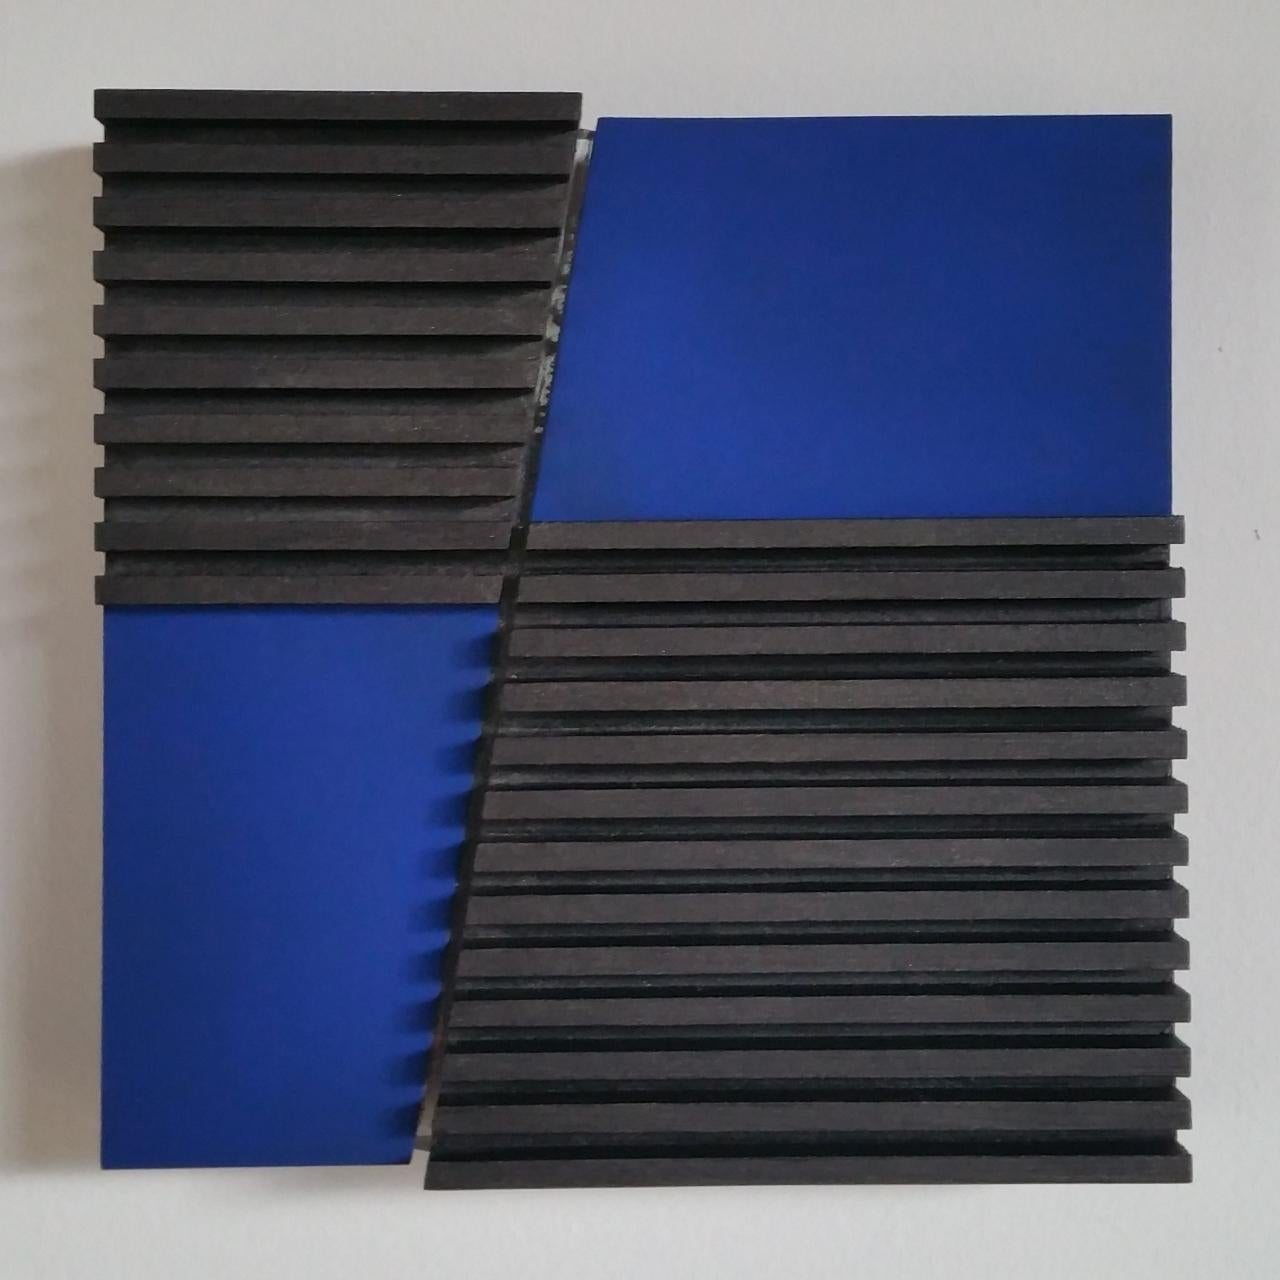 Intersection I 27/50 - blue grey contemporary modern sculpture painting relief